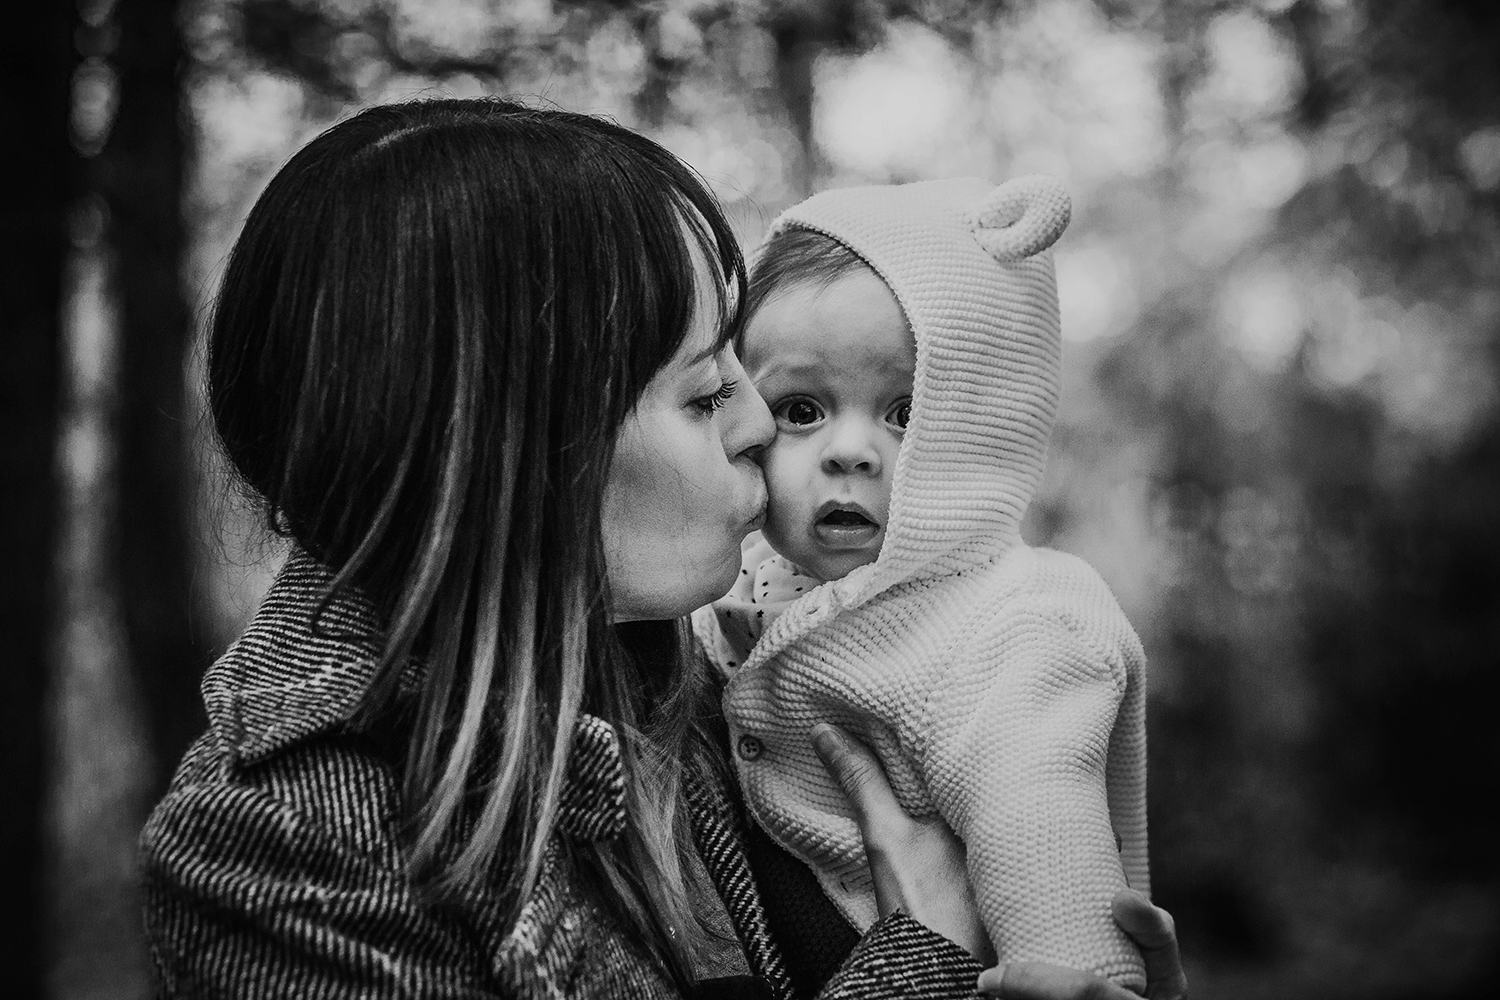 Outdoor family photography of a mother and baby in Penllergaer Woods, Swansea